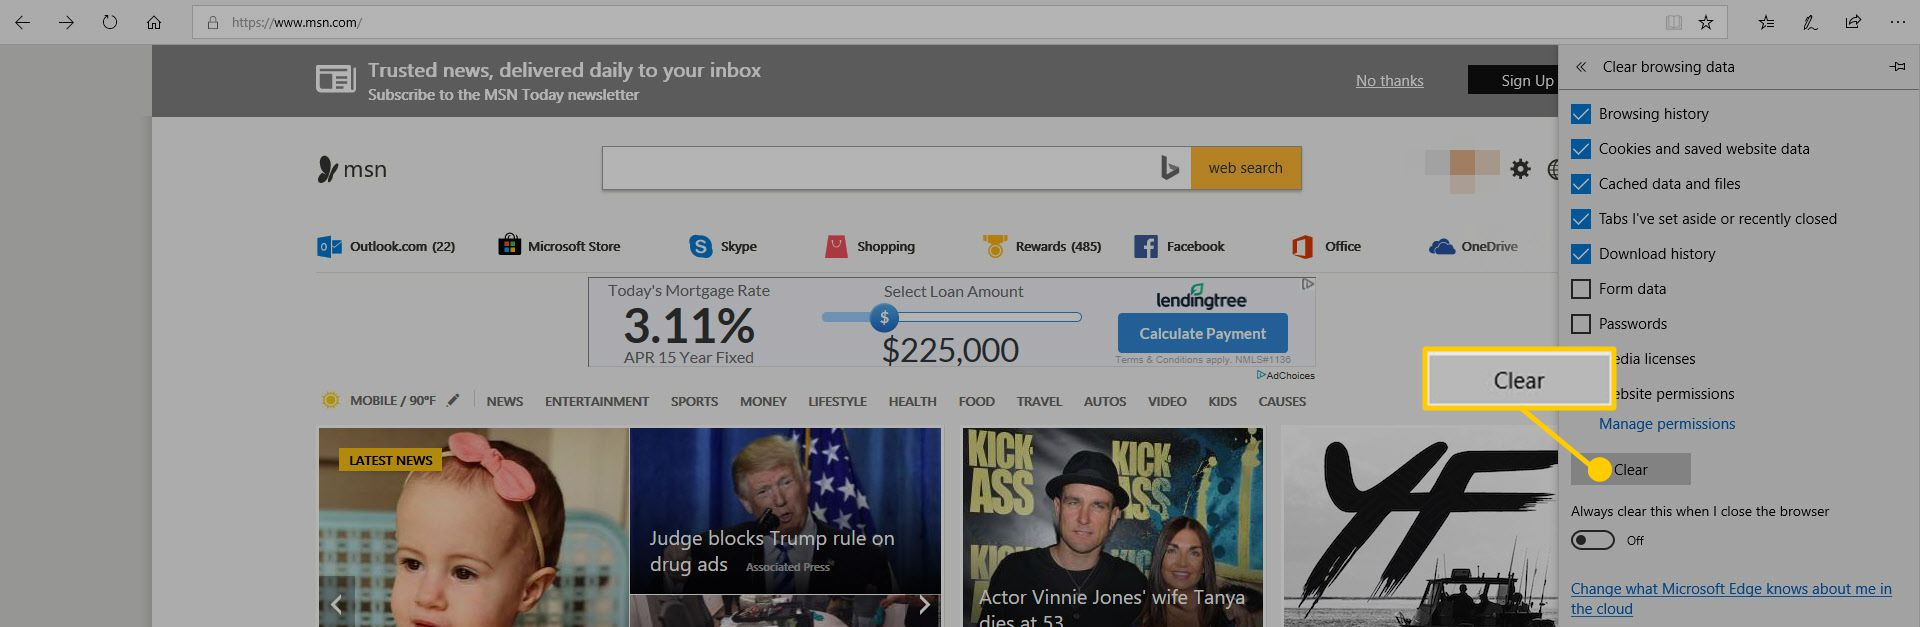 Manage and Delete Browsing Data in Microsoft Edge